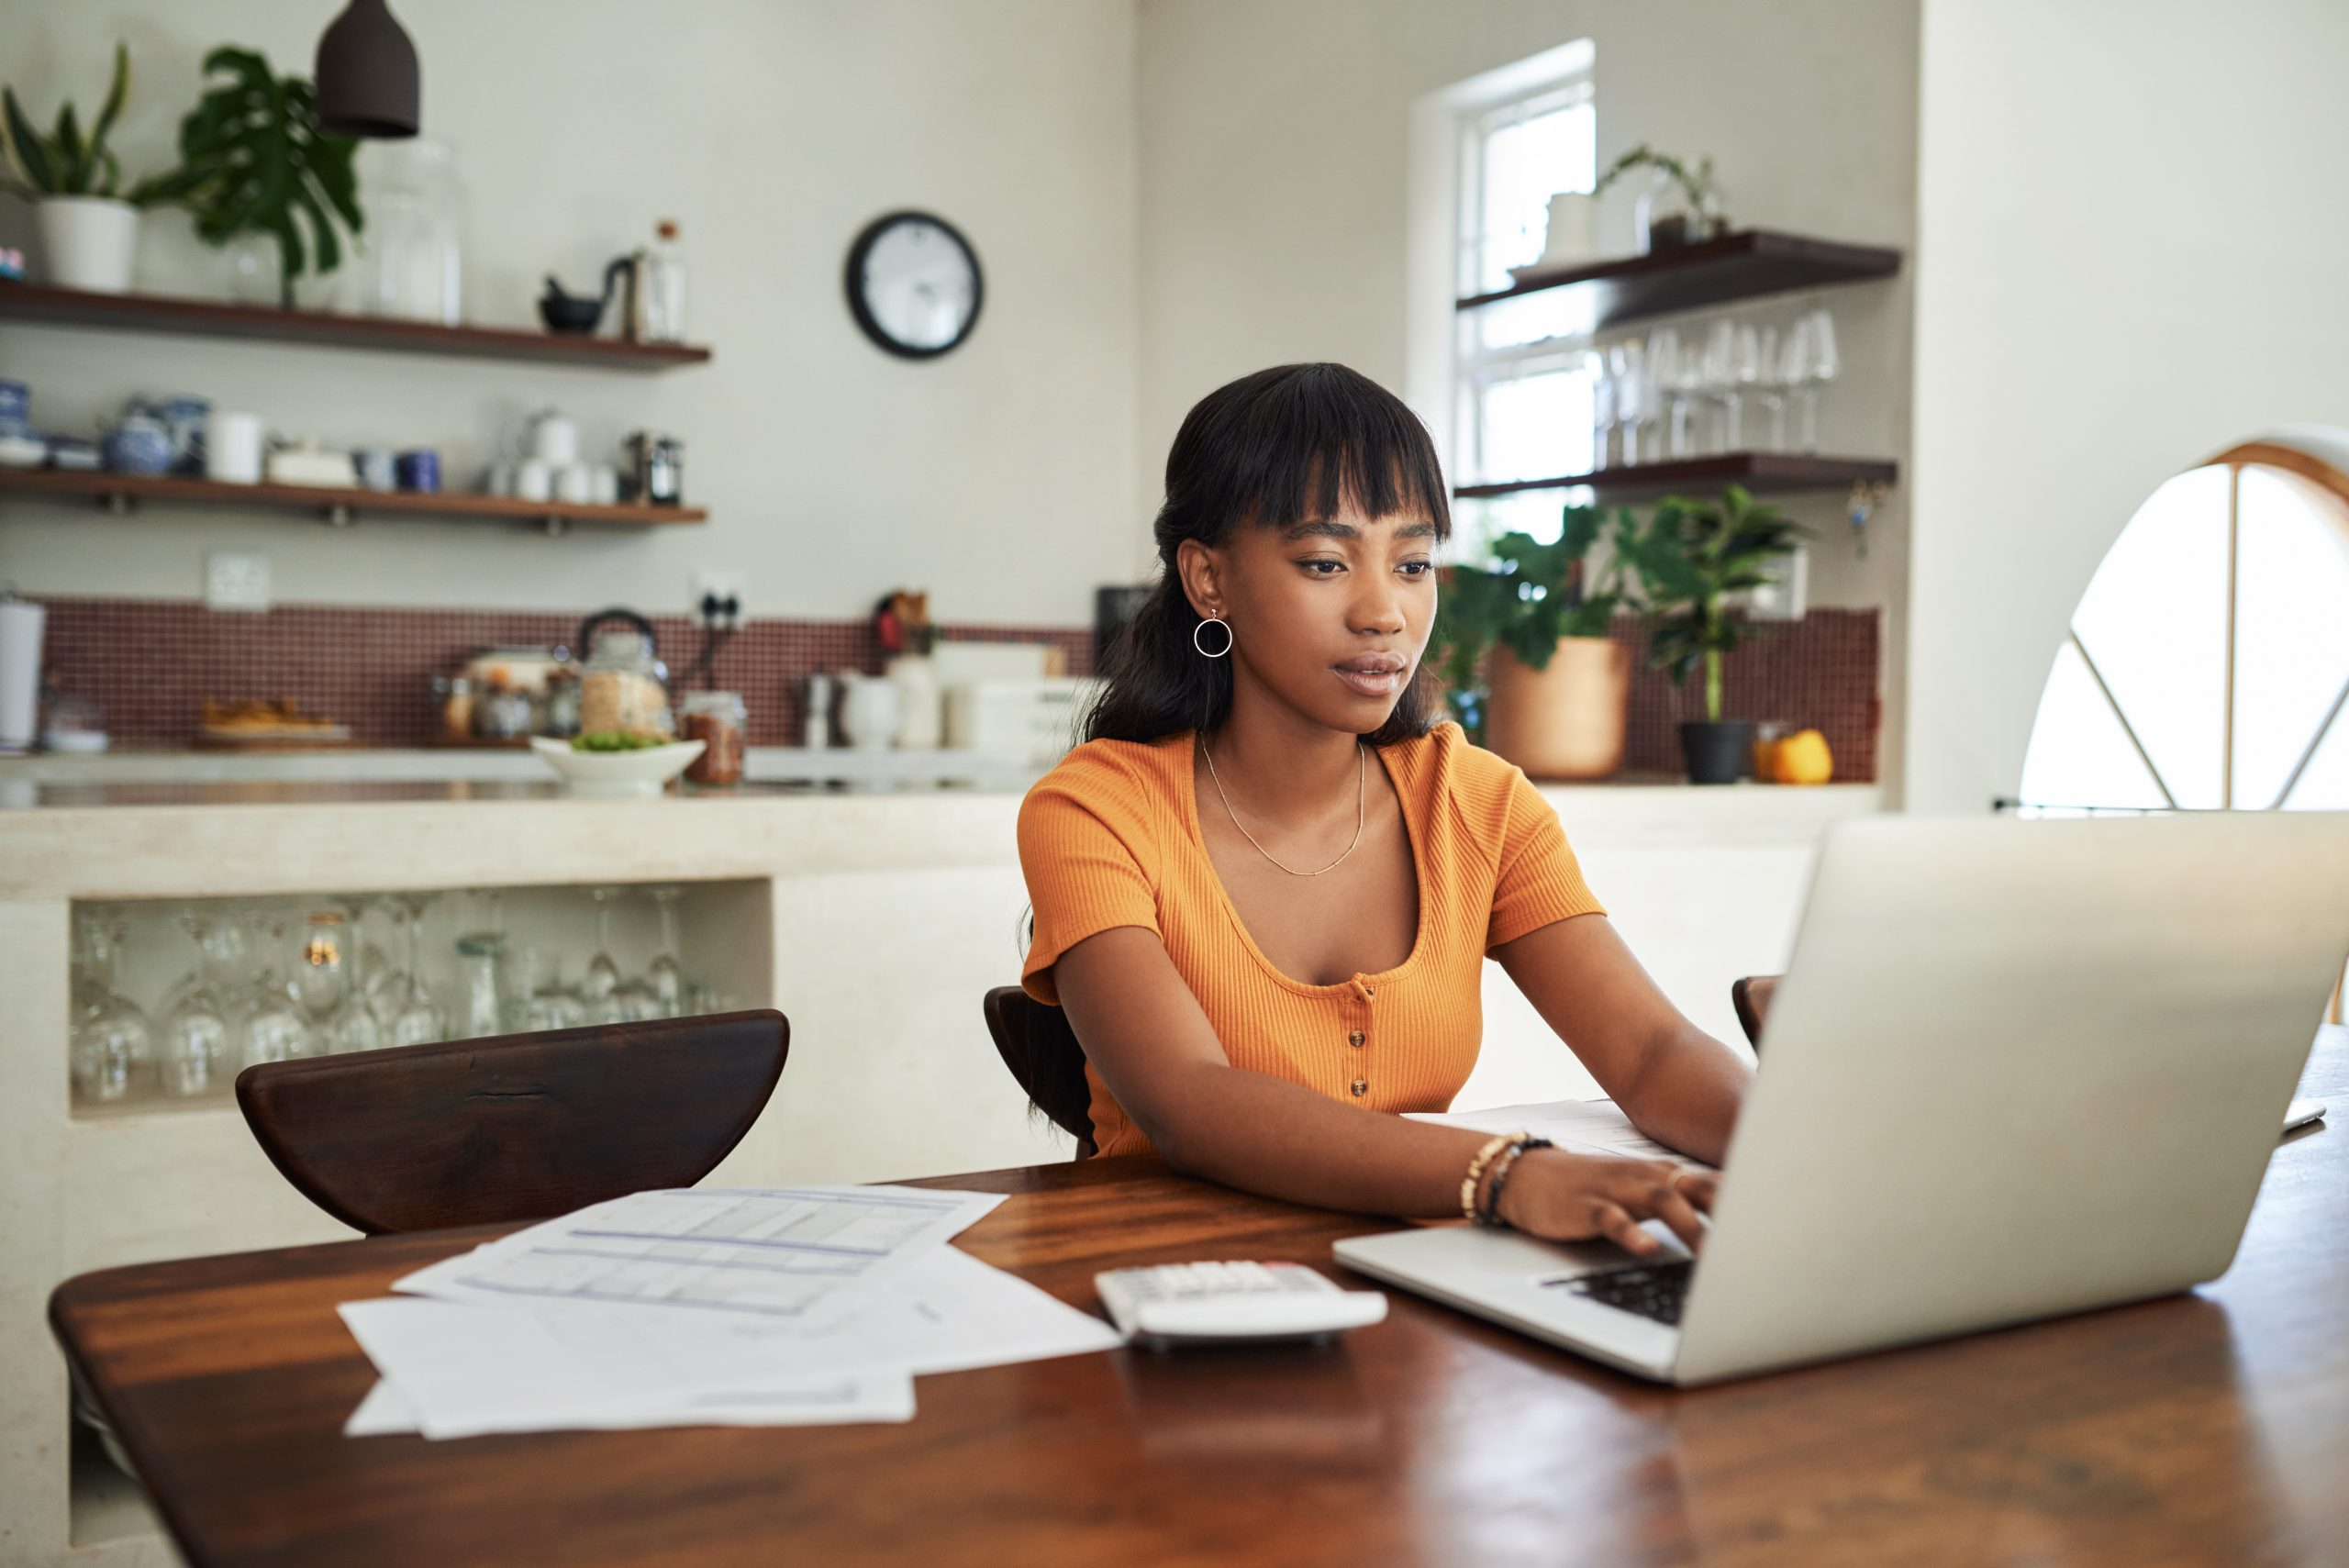 Filing Business Taxes 101: Your Small Business Guide For 2020